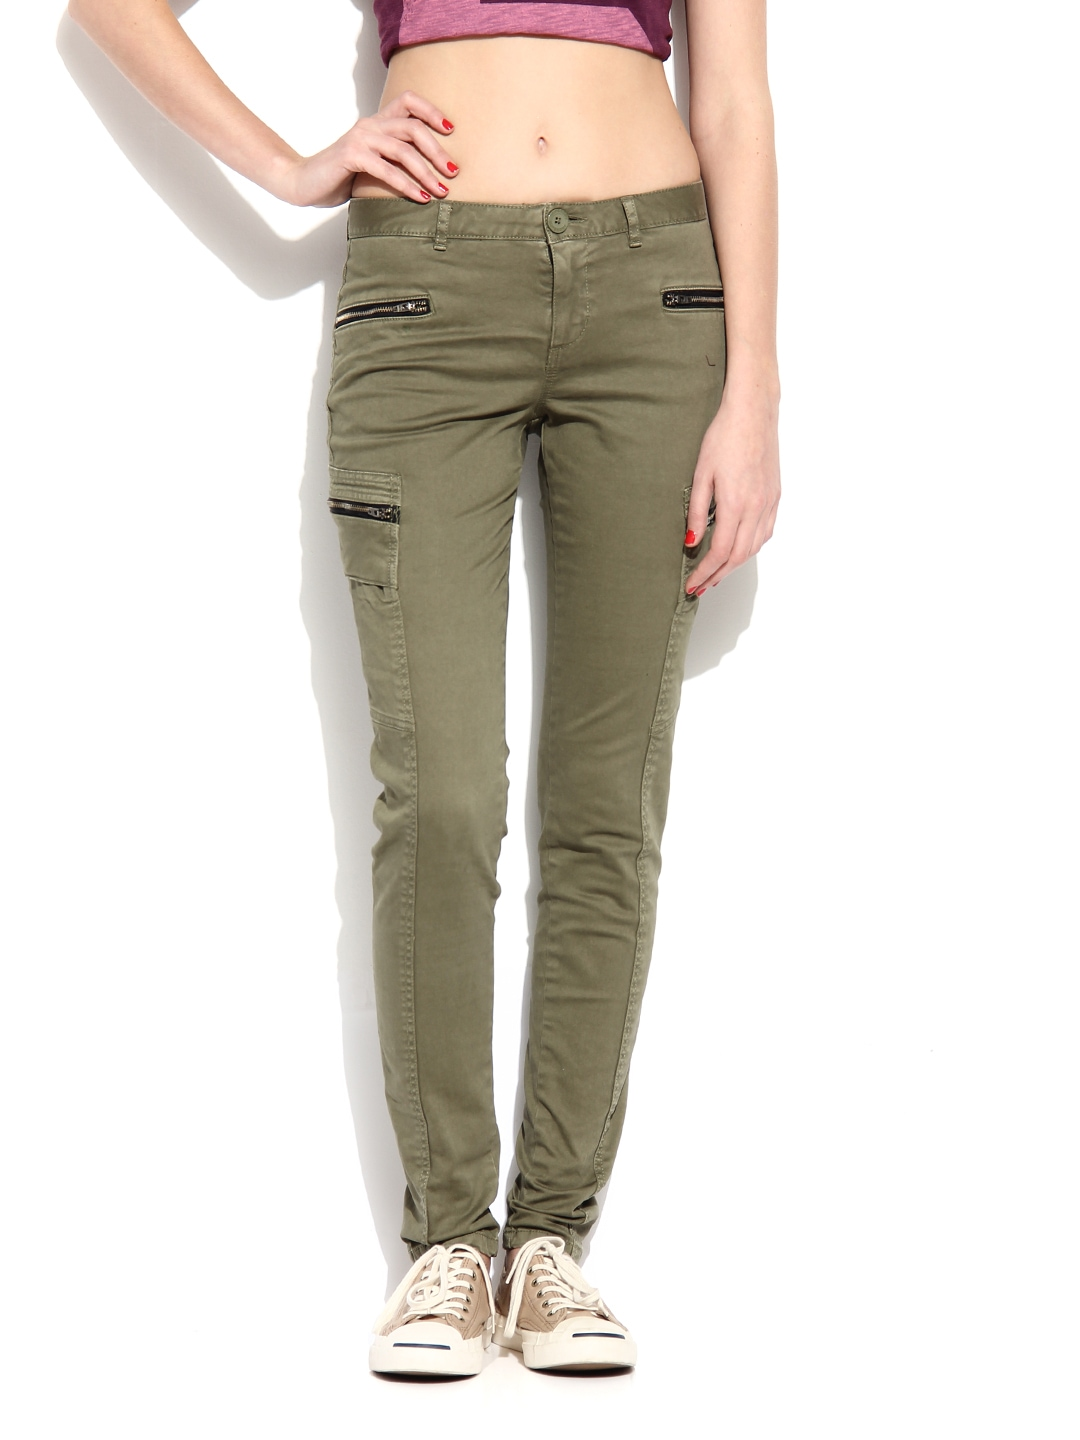 Simple You Should Try High Waist Jeggings, Low Waist Jeans, Formal Pant, Harem Pants, Palazzo, Retro Styled, Sailor Pants, Pegged Pants, Cargo And Much More  Become Most Popular Western Outfit Among Indian Women They Can Team It Up With